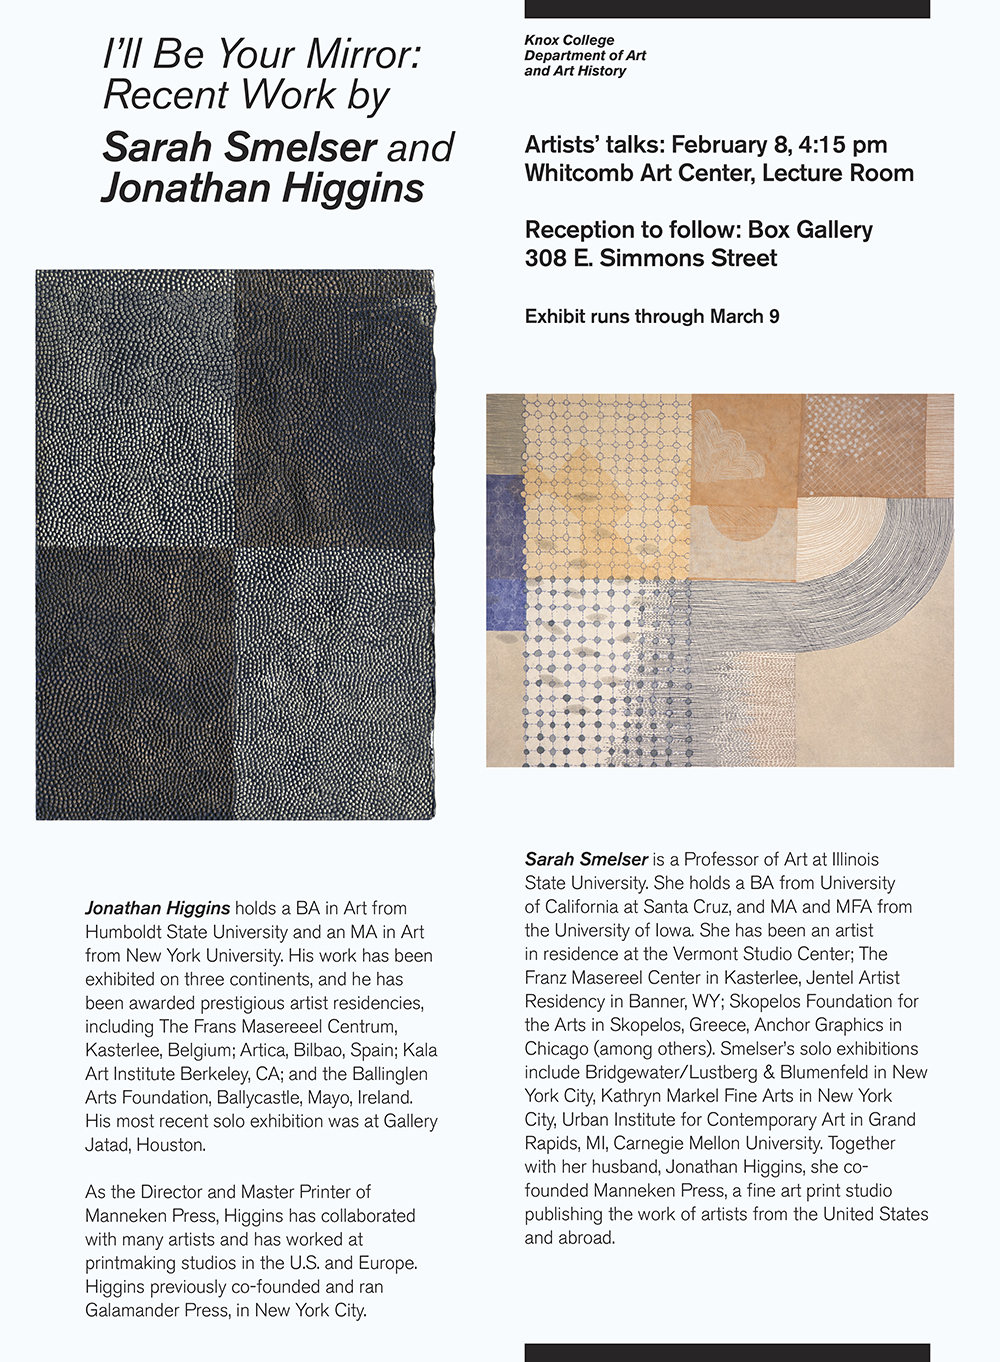 Manneken Press, Jonathan Higgins, Sarah Smelser, The Box Gallery